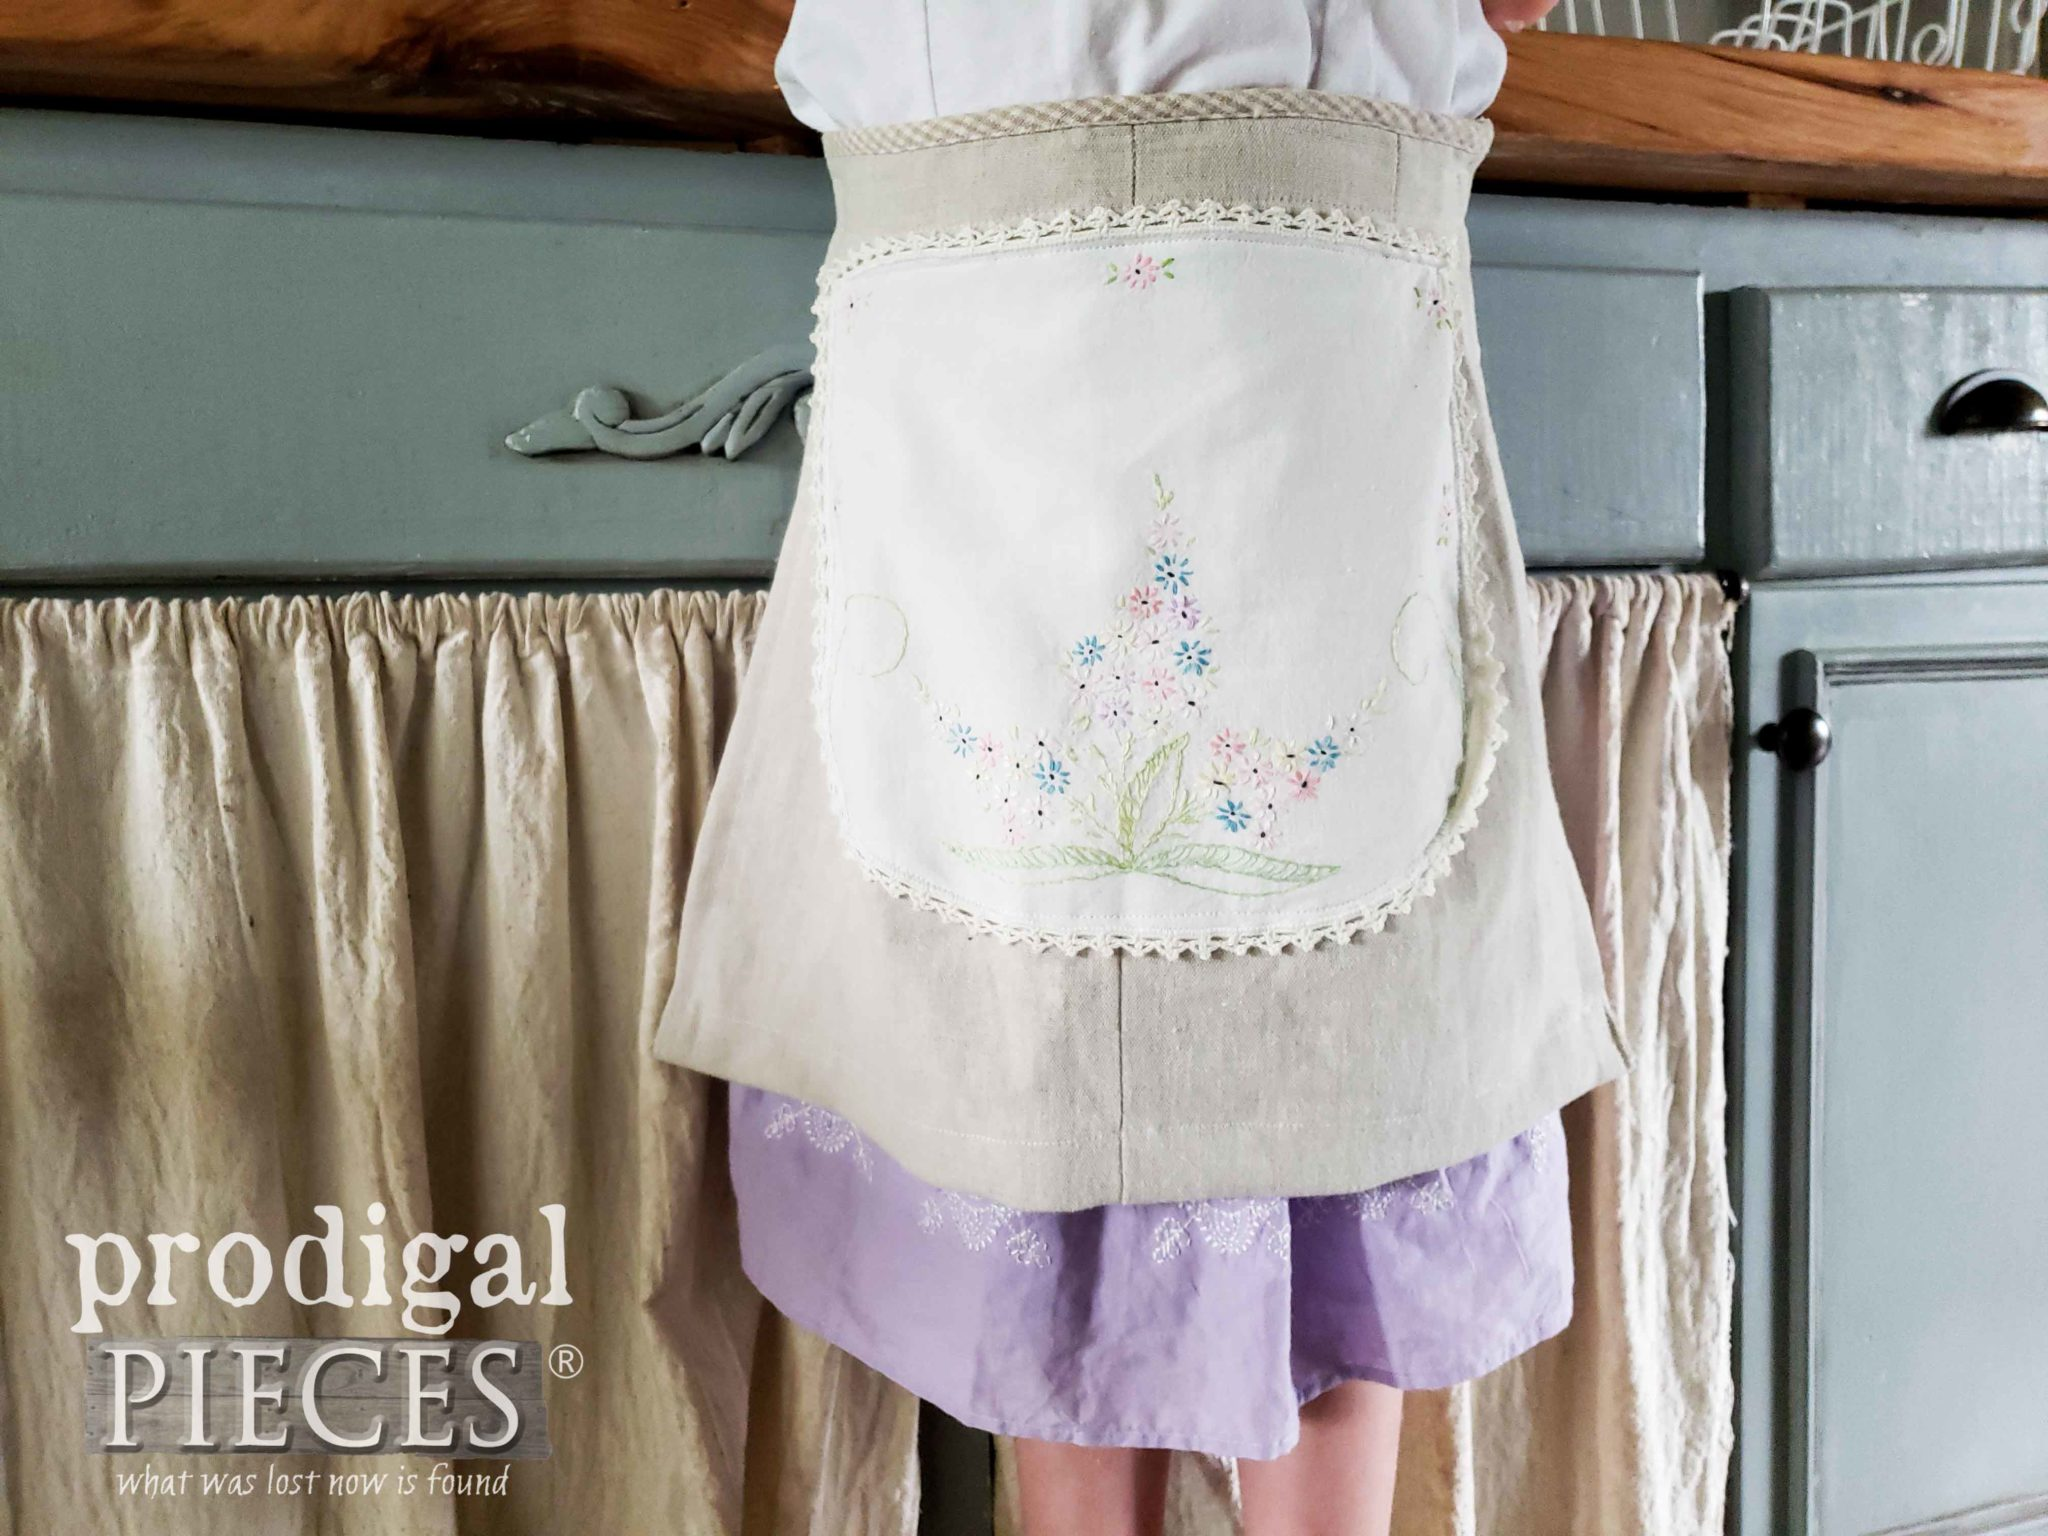 Handmade Linen Apron with Vintage Embroidery | Video Tutorial by Larissa of Prodigal Pieces | prodigalpieces.com #prodigalpieces #handmade #home #vintage #sewing #fashion #kids #accessories